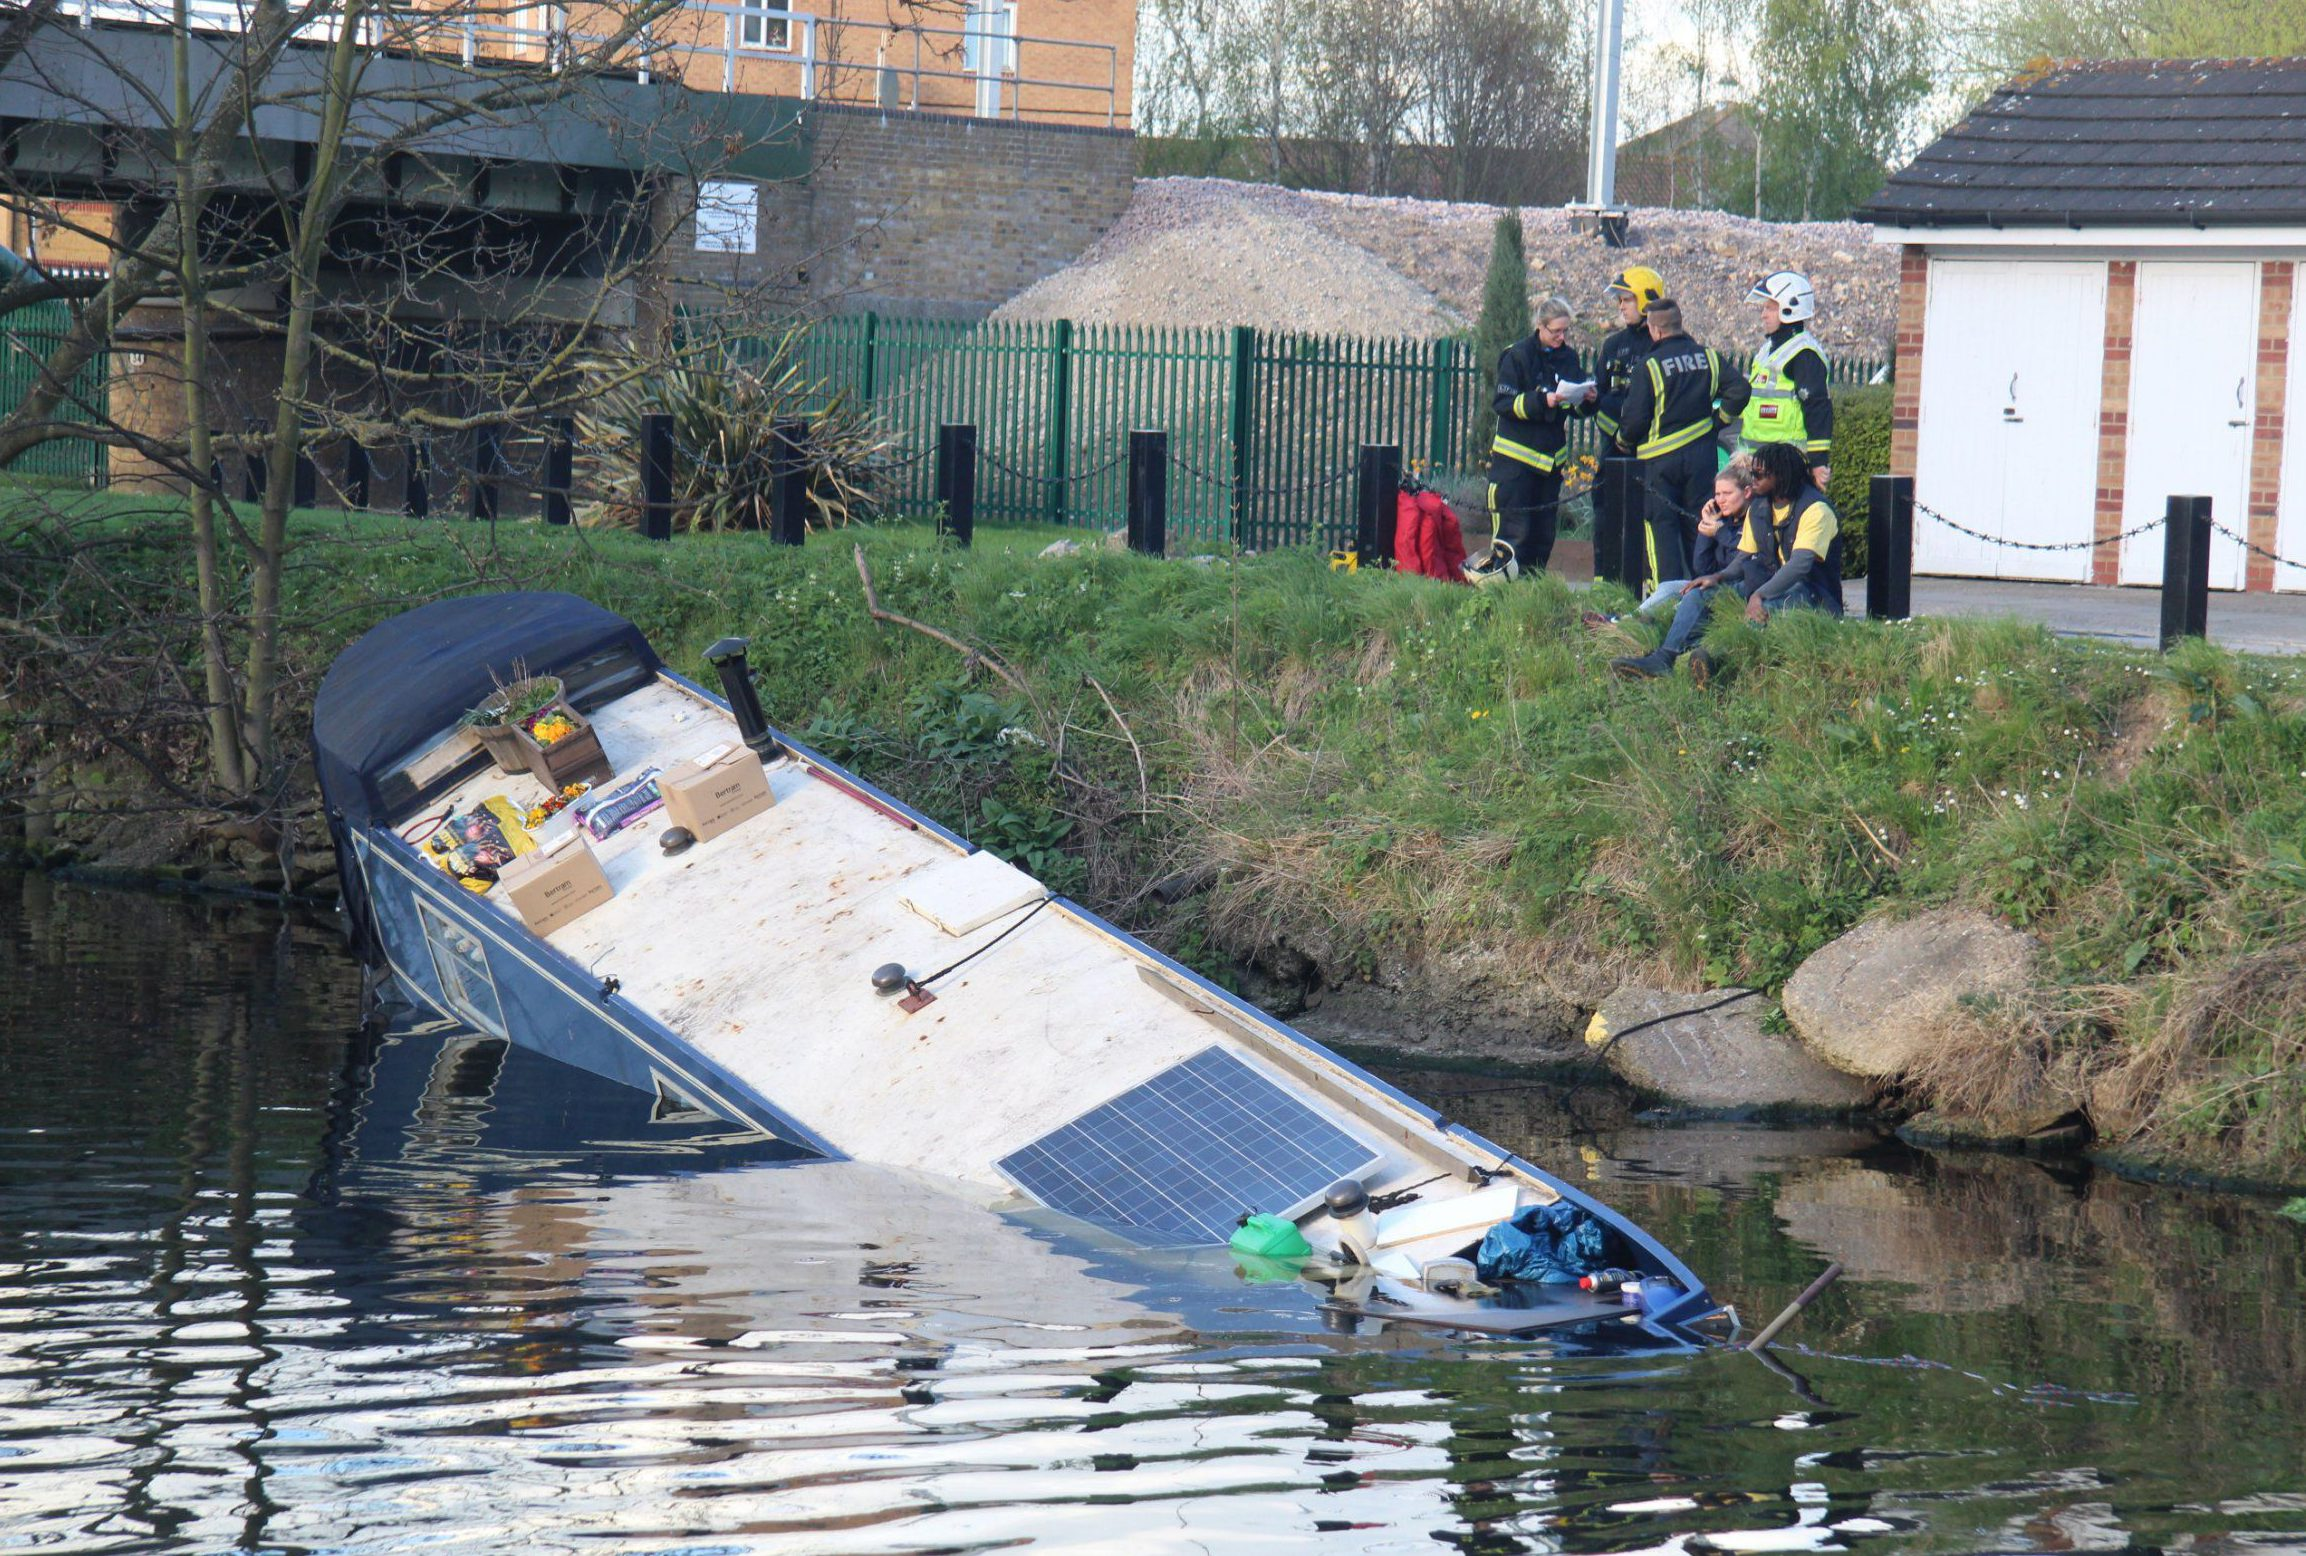 GoFundMe page for woman whose houseboat sank raises £1,000 target within a day